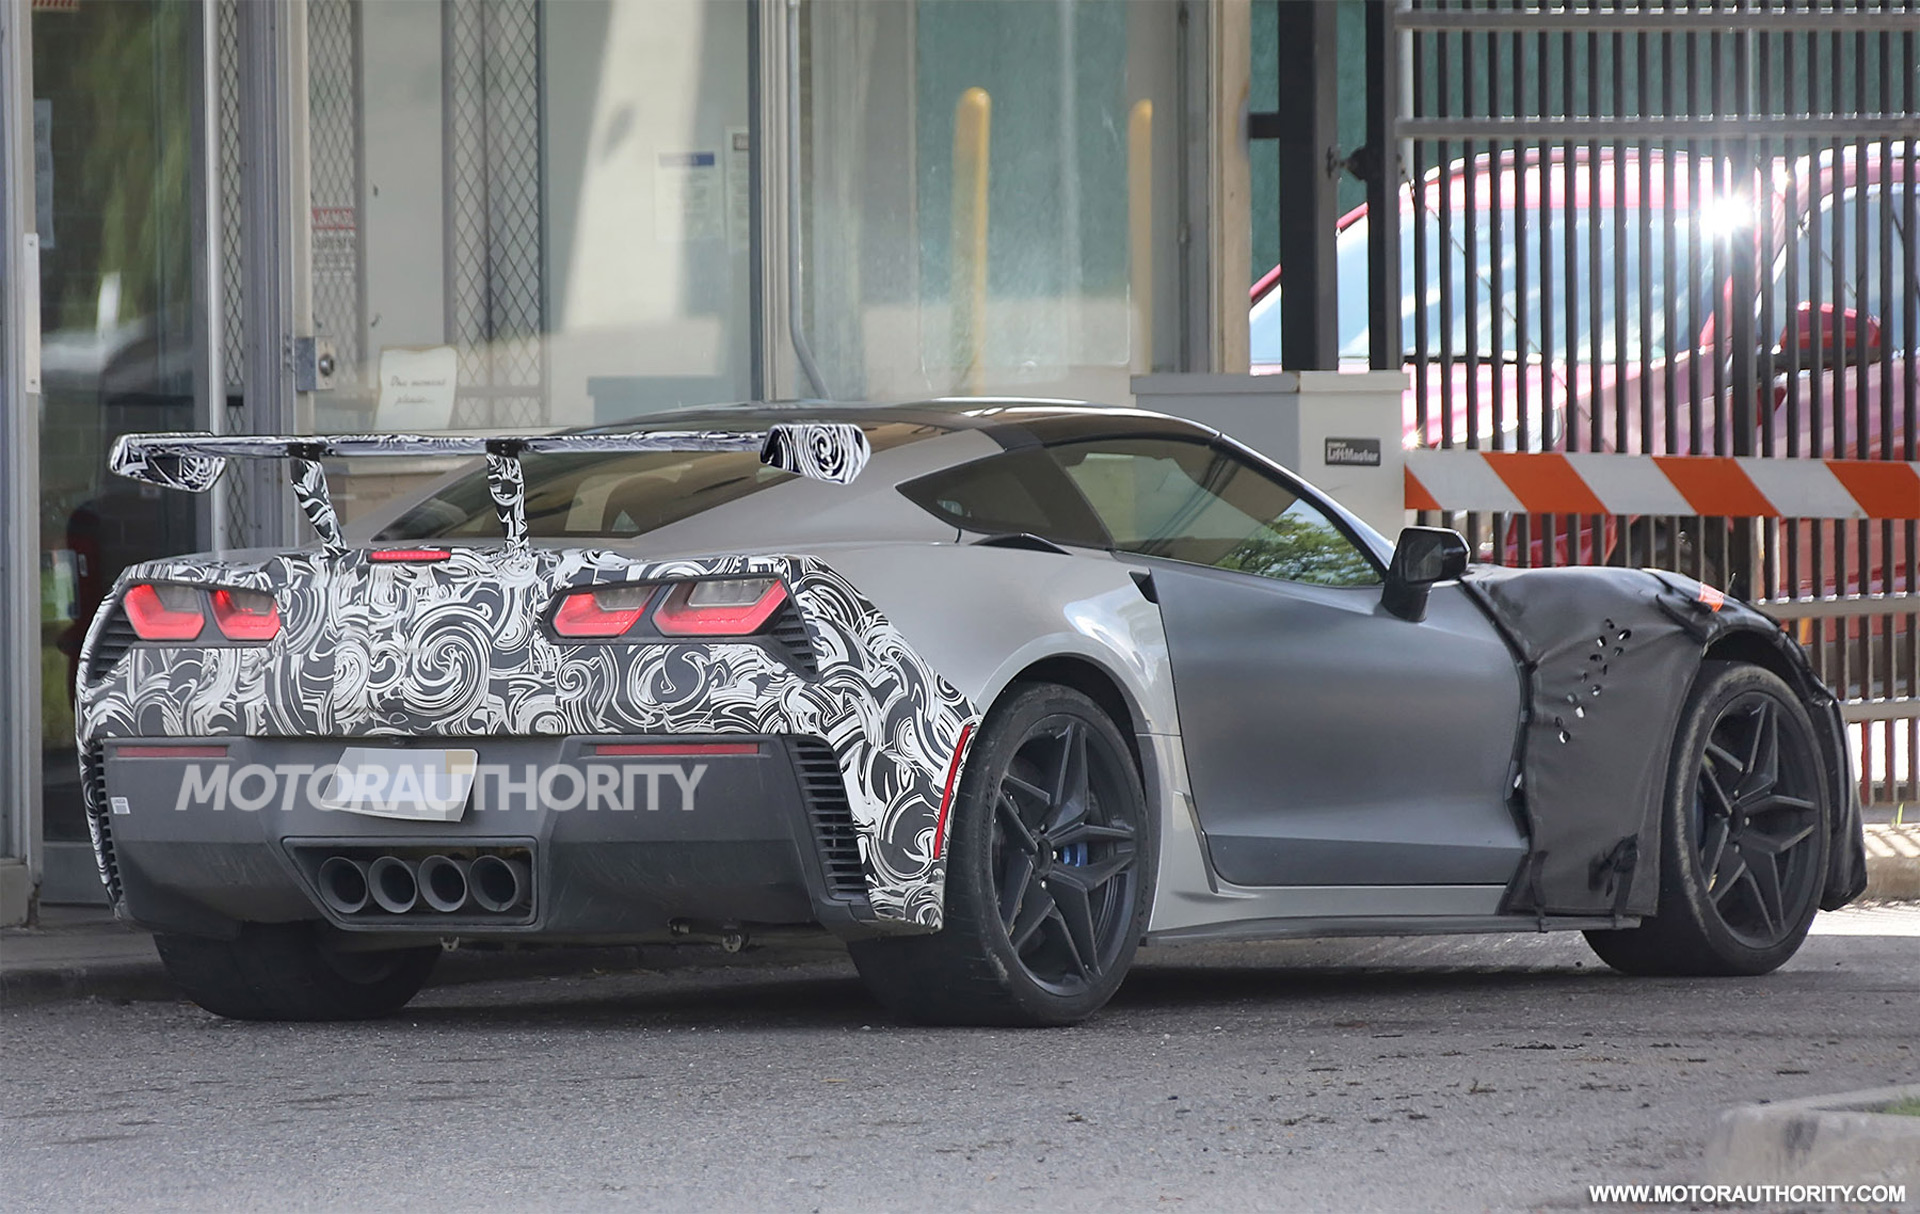 How Much Horse Does The New 2018 Chevrolet Corvette Zr1 Need To Have